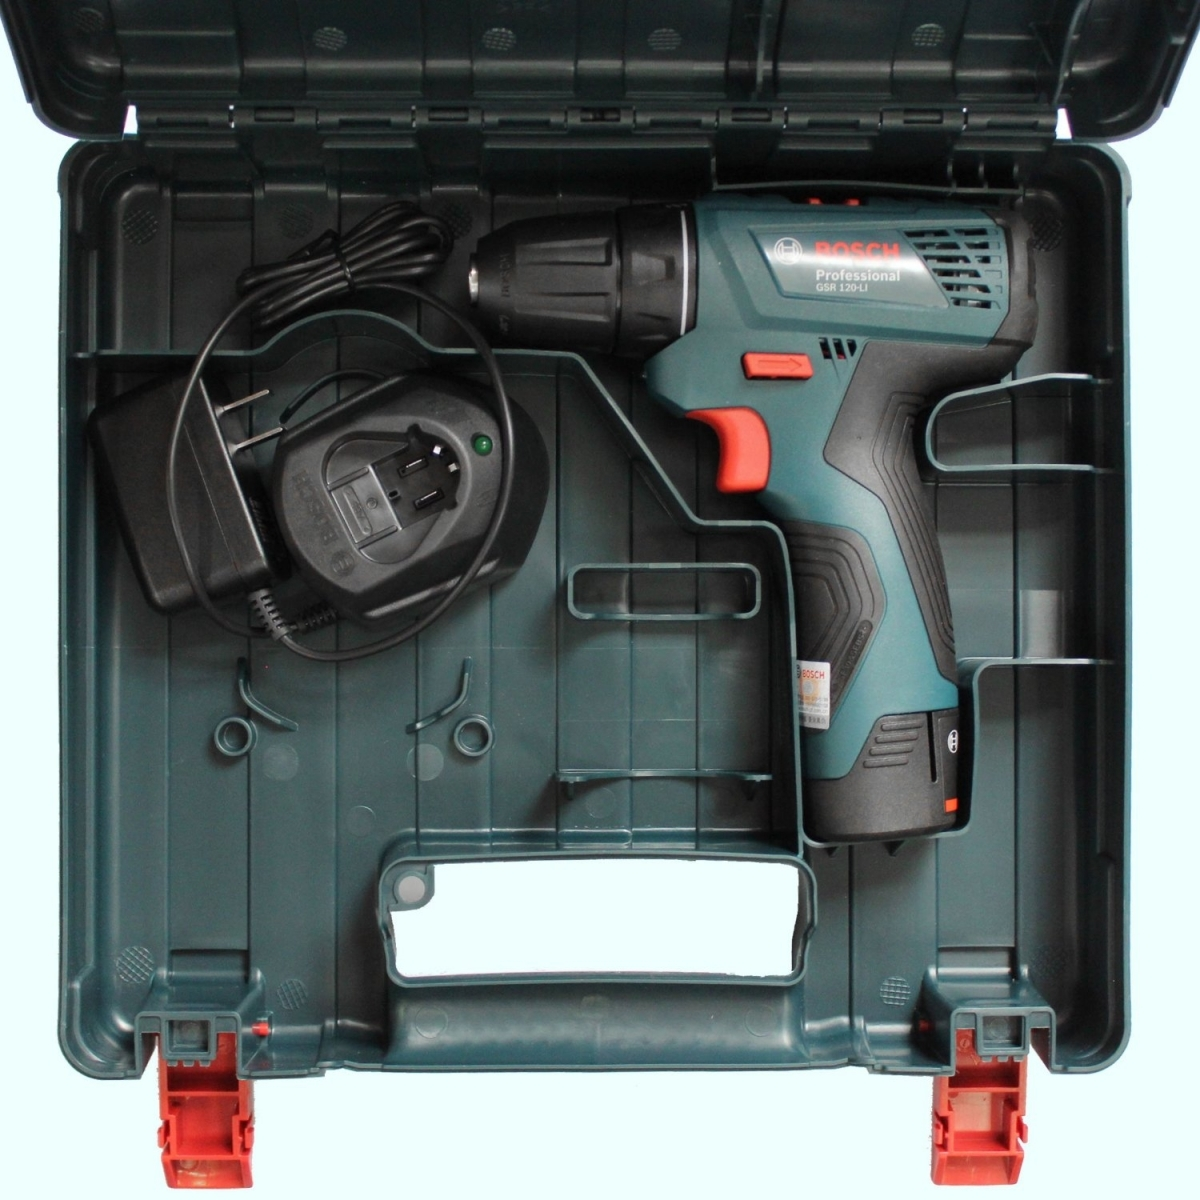 bosch gsr 12v compact cordless drill driver my power tools. Black Bedroom Furniture Sets. Home Design Ideas